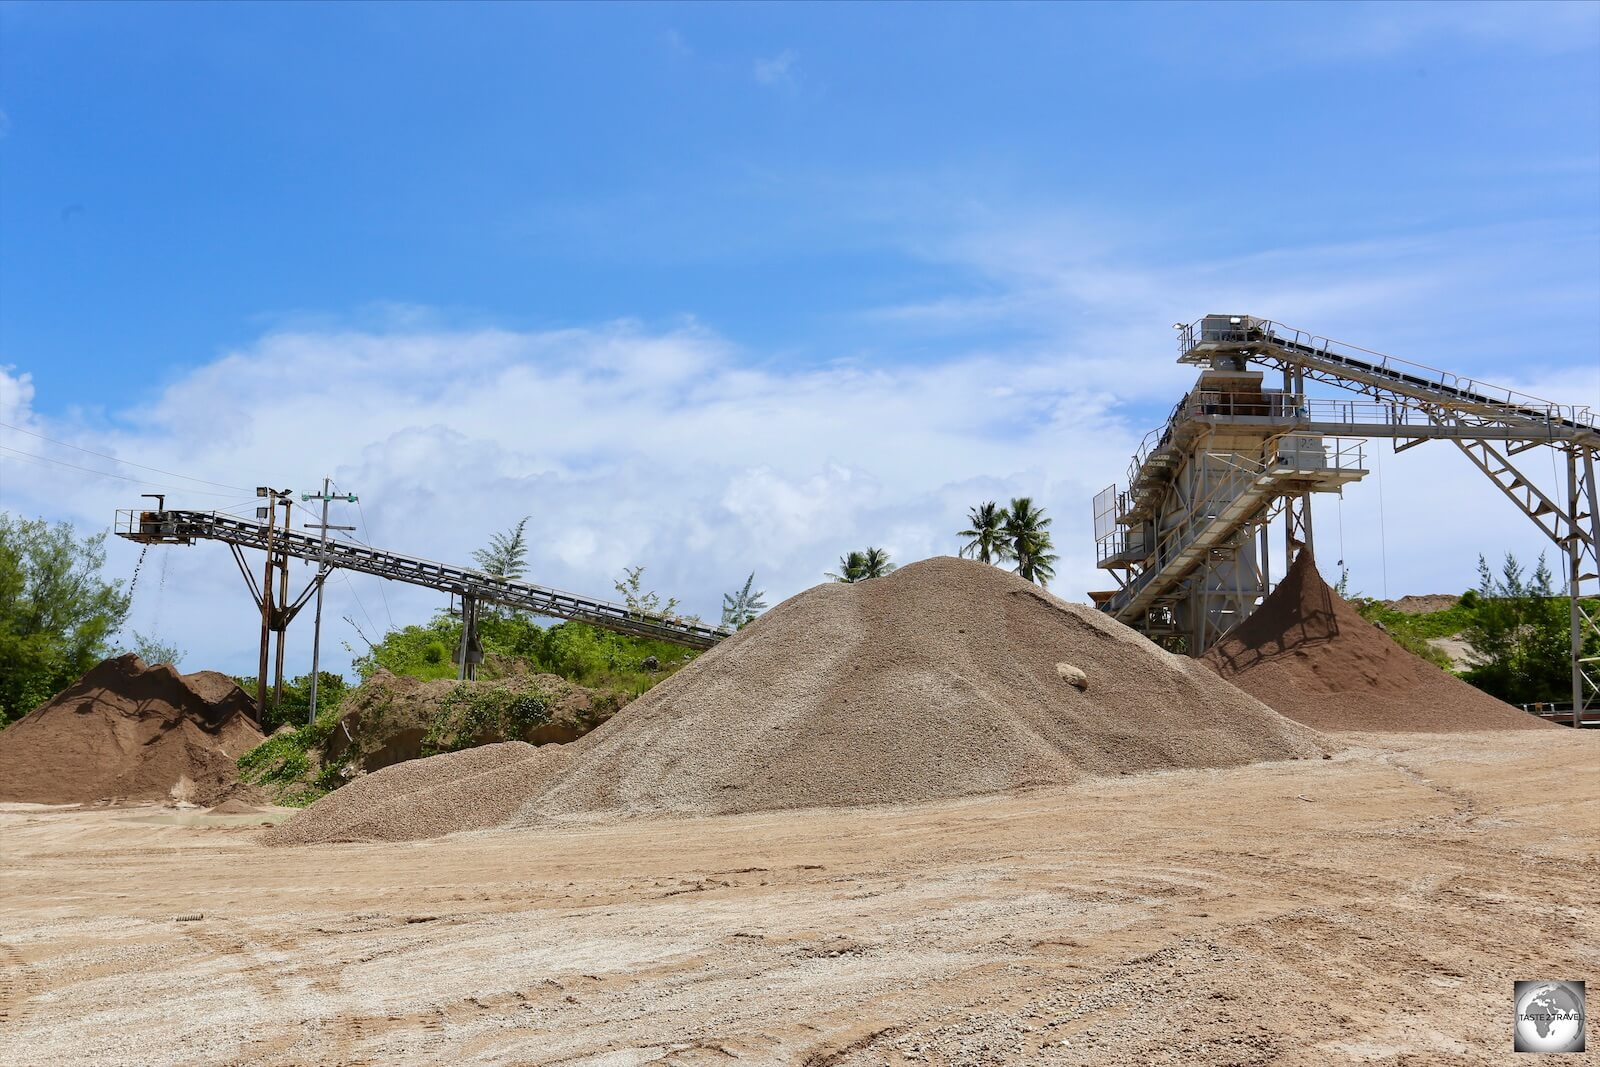 Phosphate being sorted into different grades at a mine on Topside.